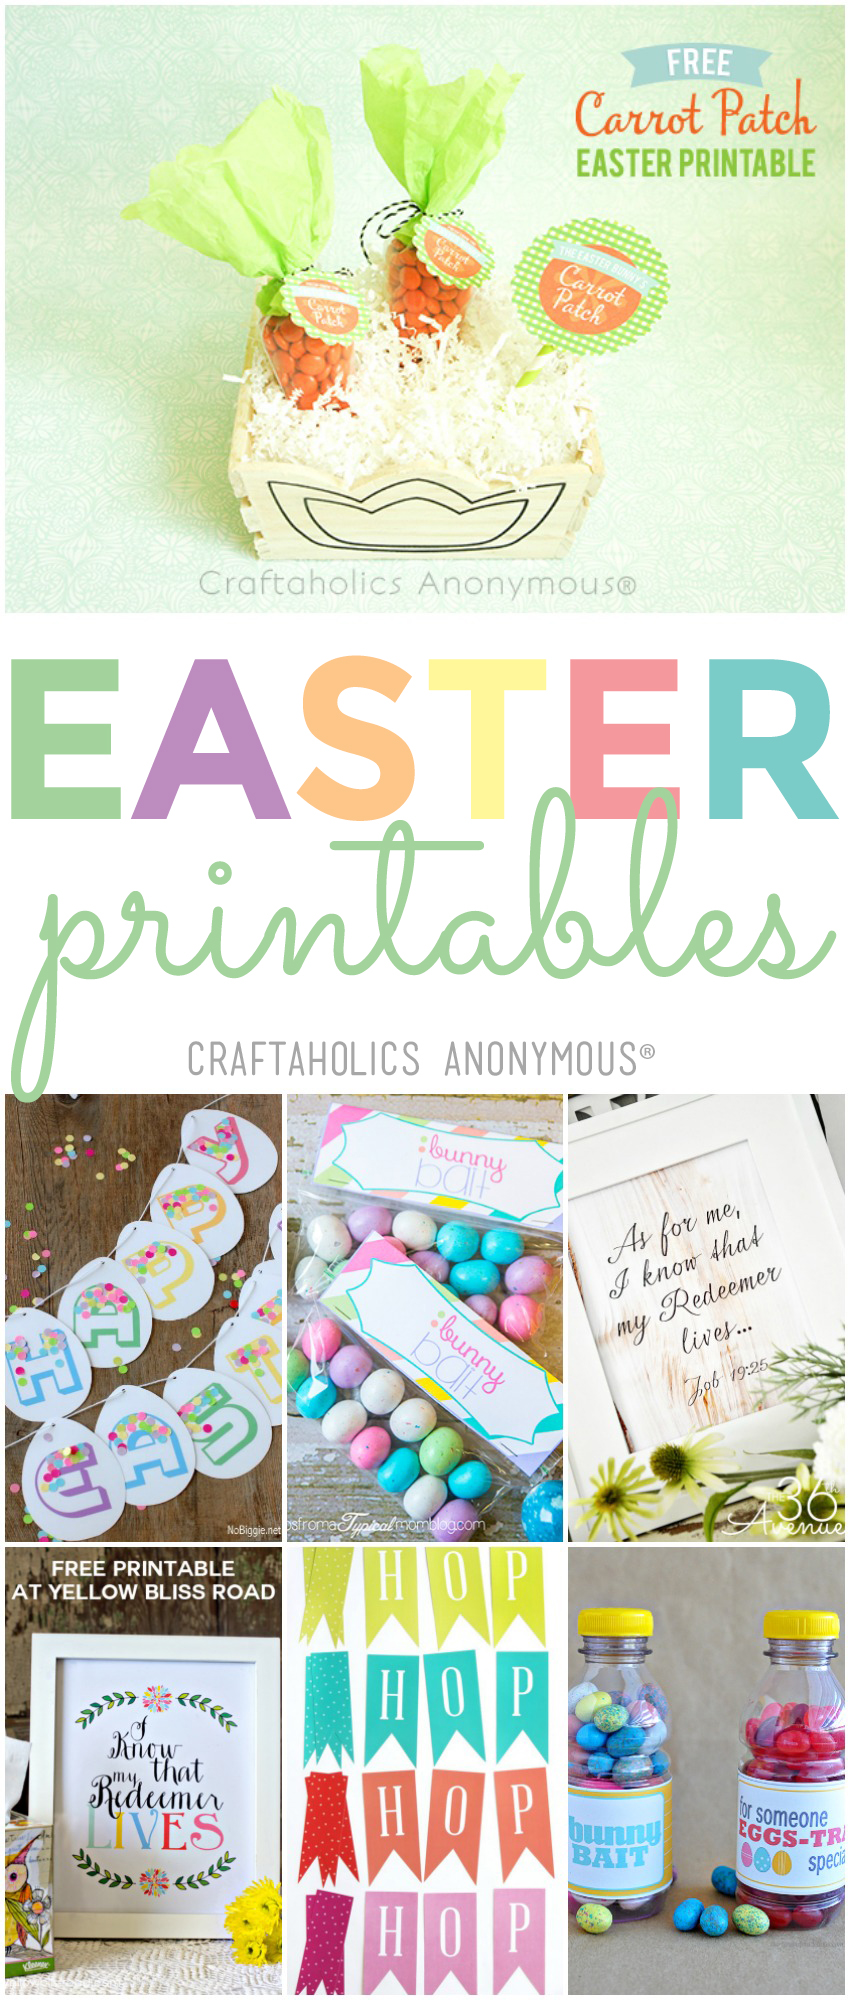 Over 40 of the cutest Free Easter Printables for your holiday decor this year! Check out the full post at craftaholicsanonymous.net!